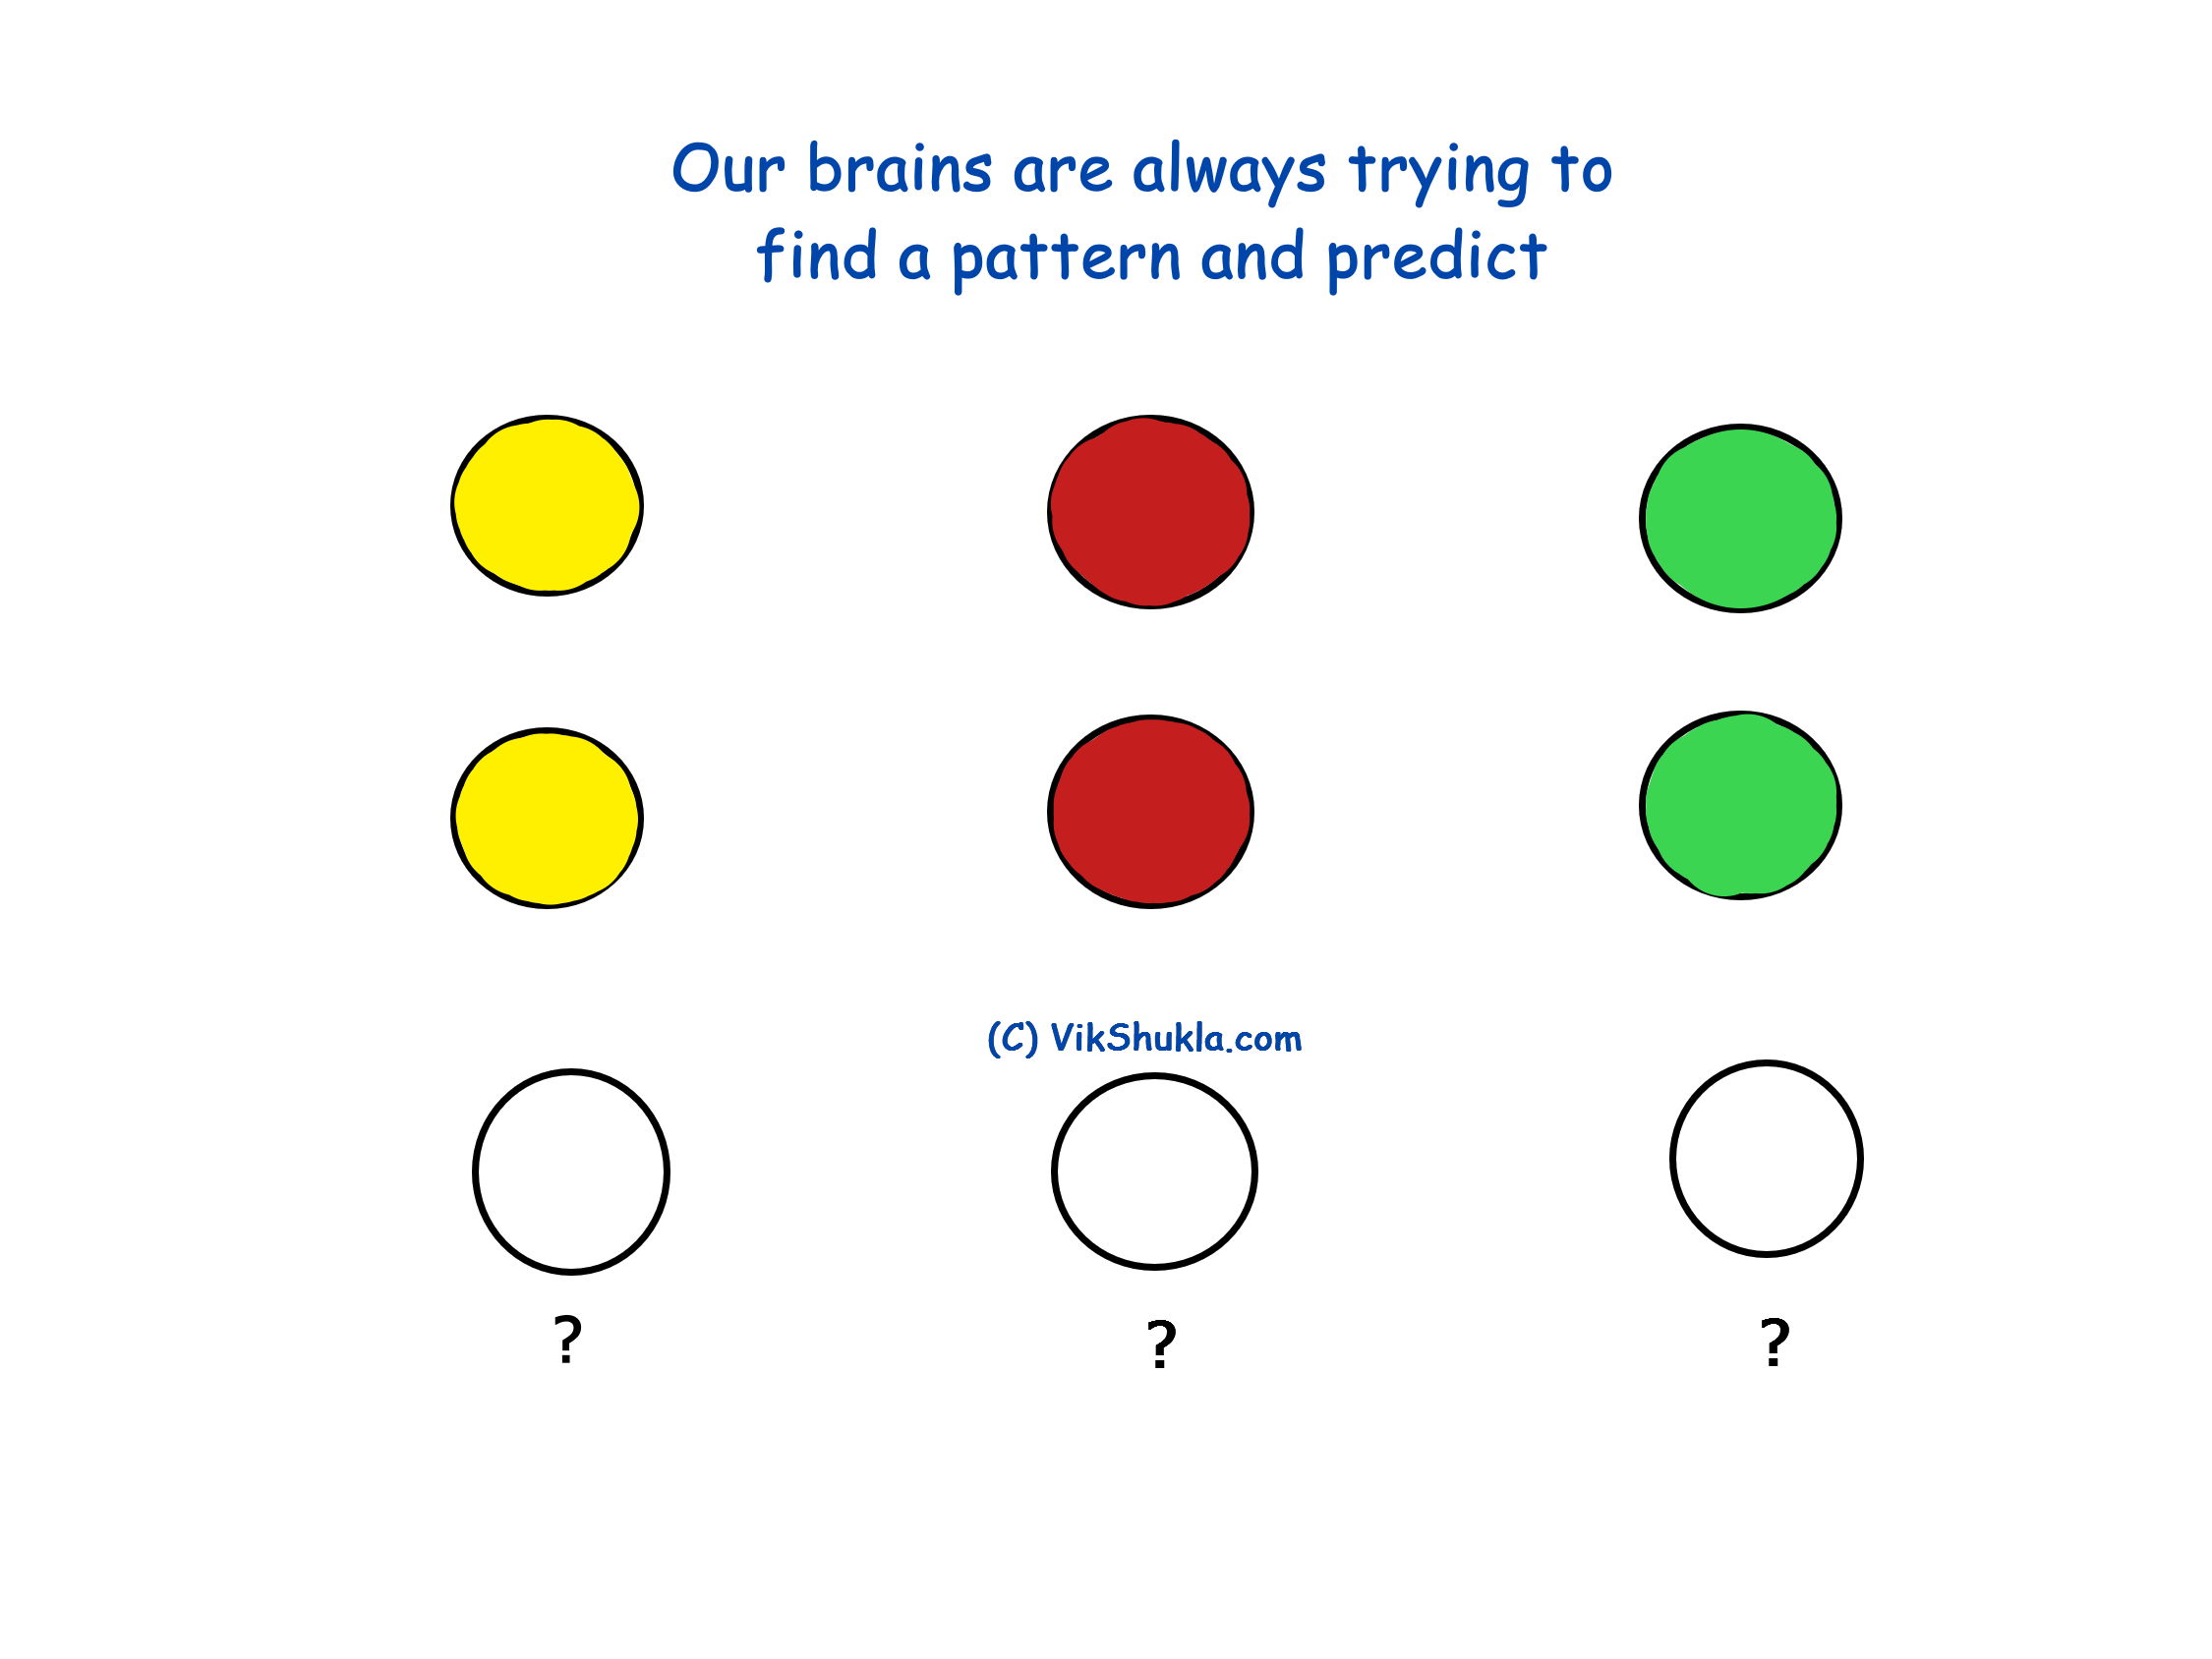 Our brains are always trying to find a pattern and make predictions